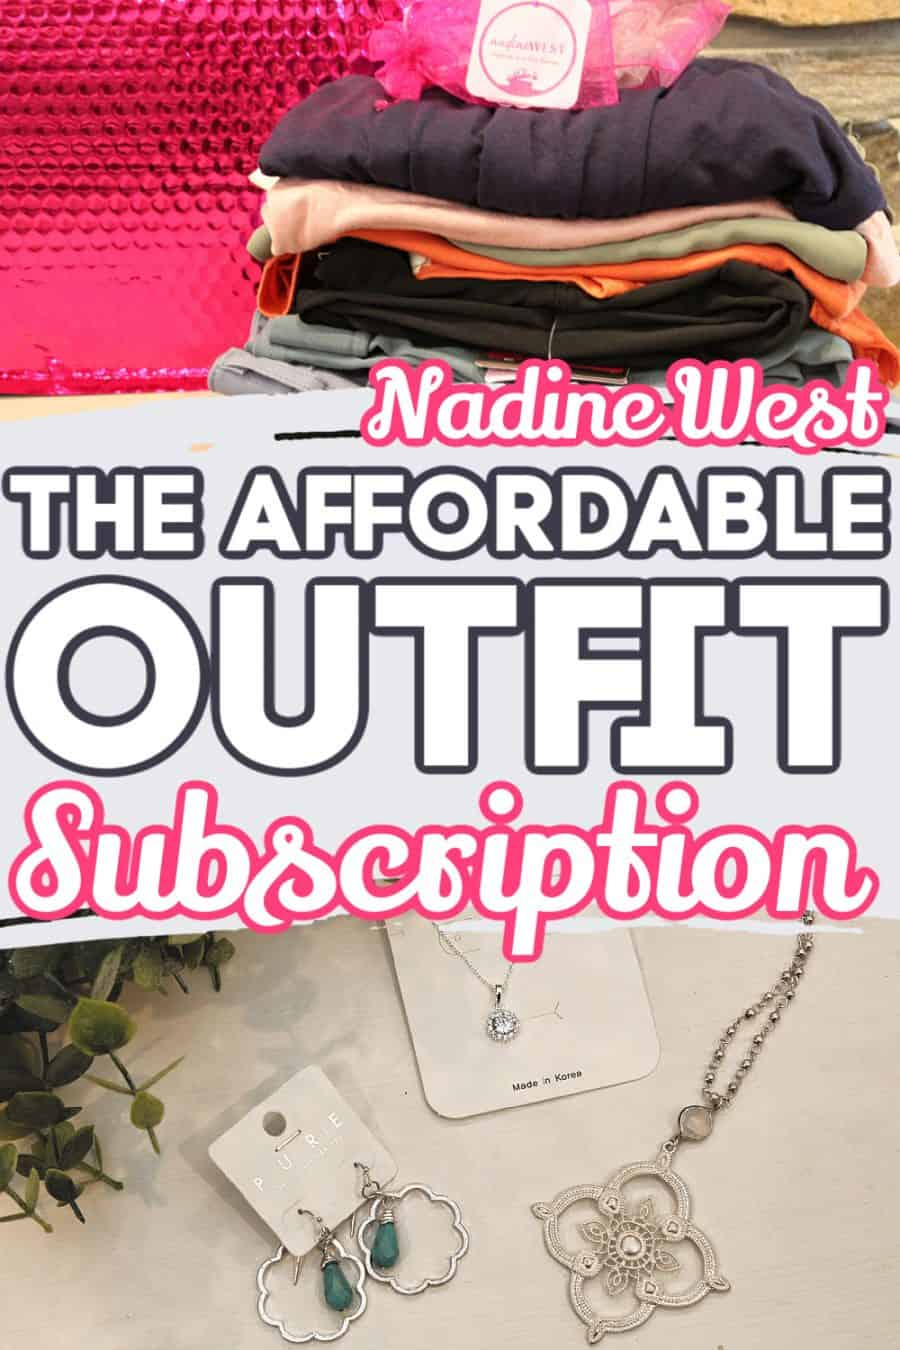 Nadine West - The Affordable Outfit Subscription